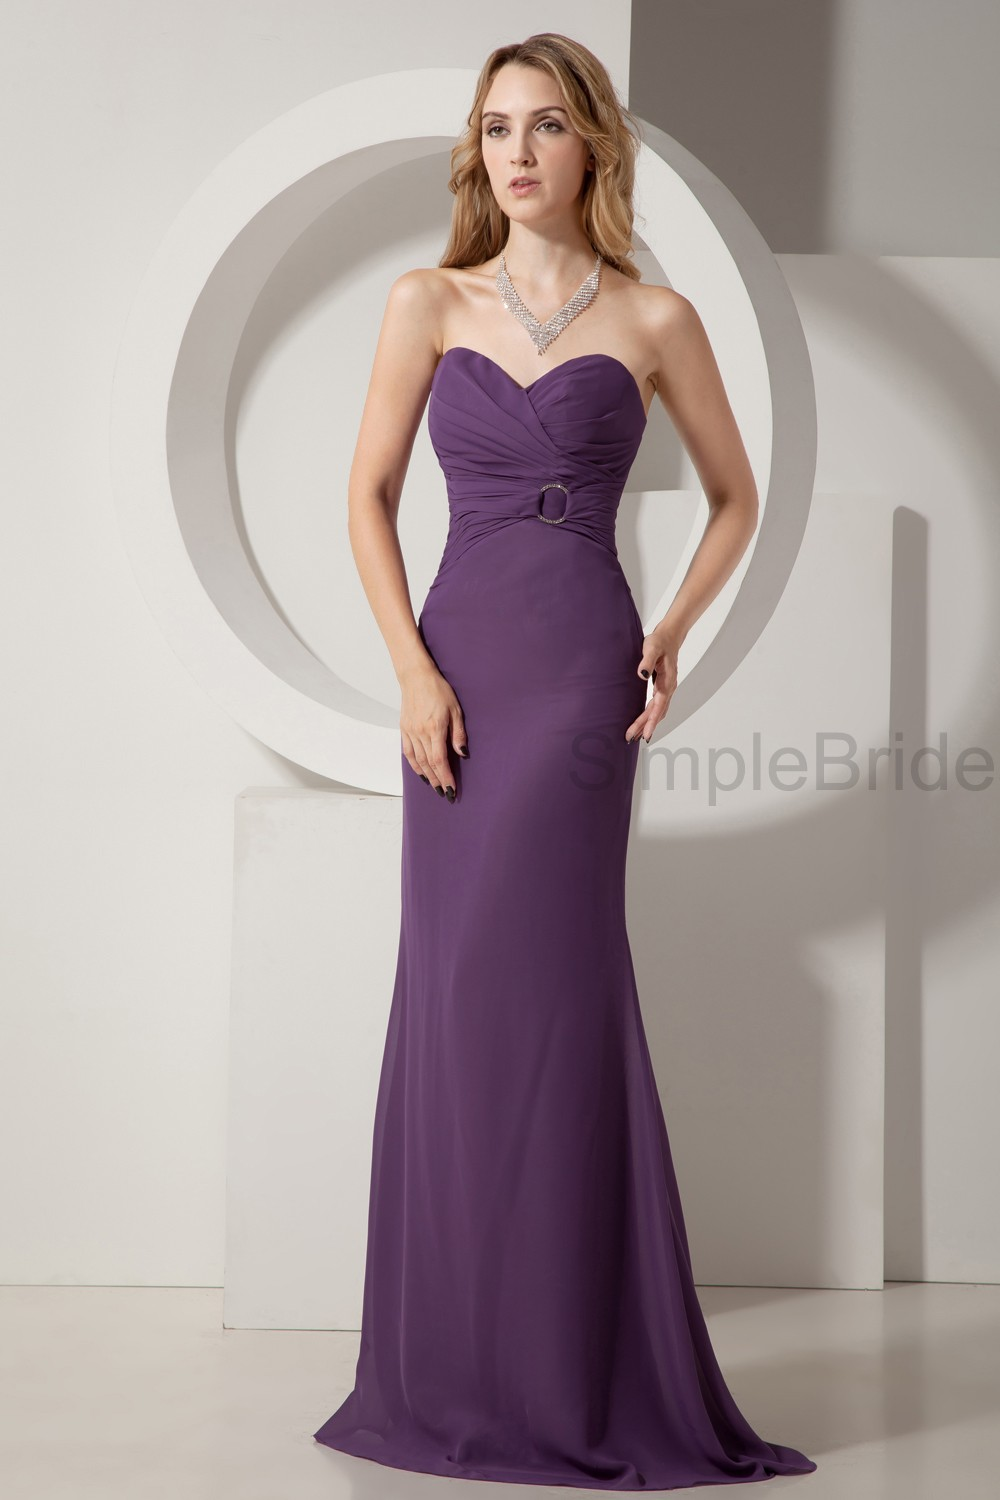 Sweetheart Grape A-line Natural Ruched Bridesmaid Dresses - (SBMD-B ...